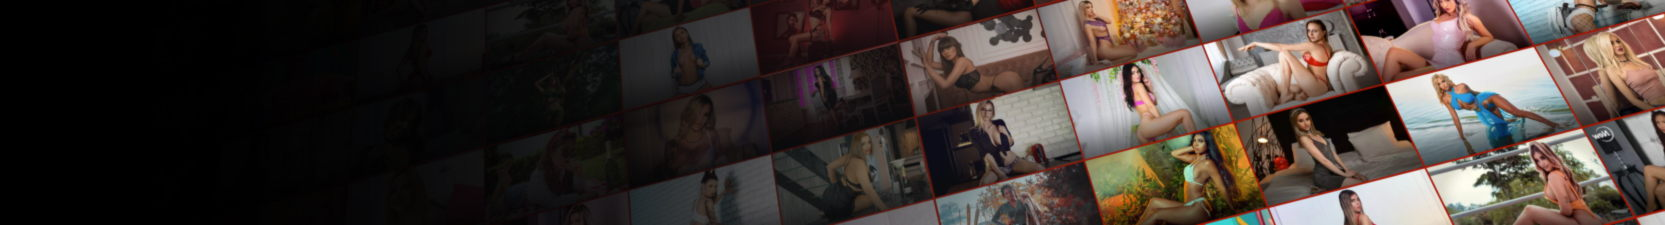 Banner promoting live sex shows